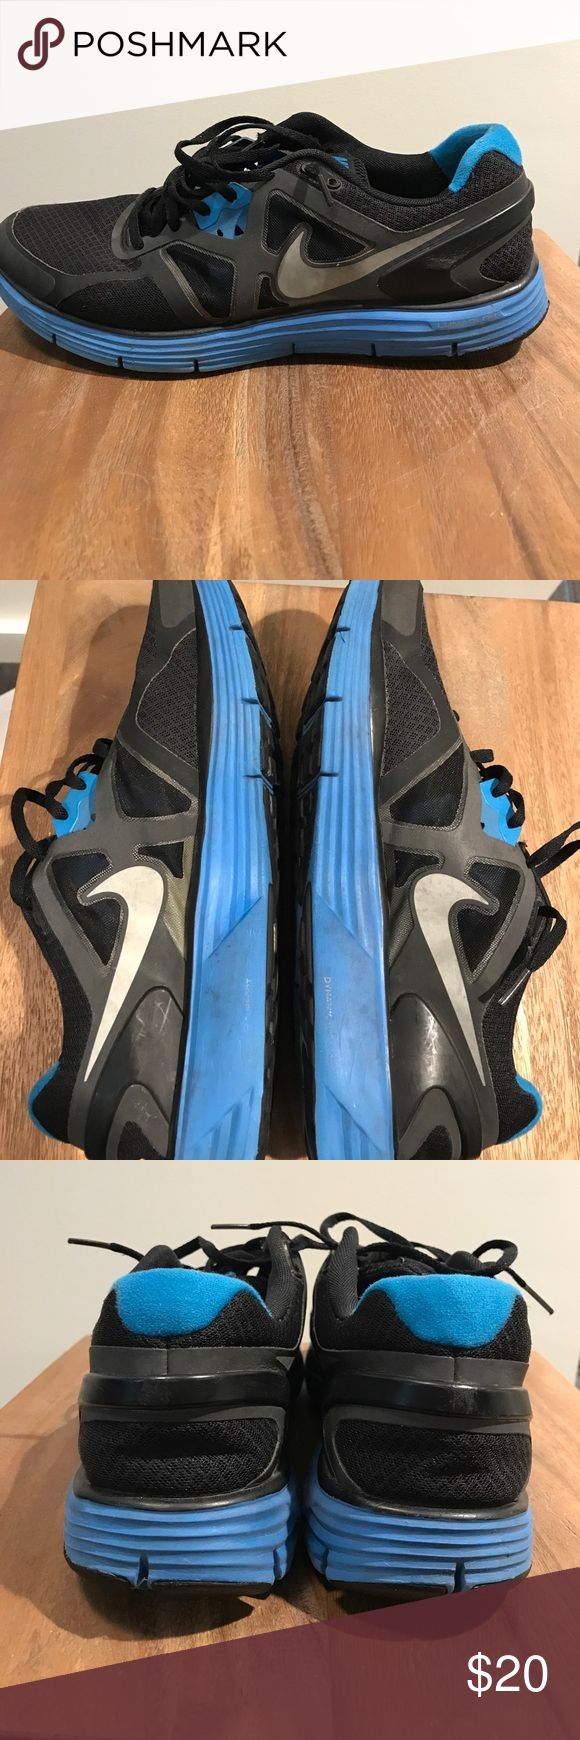 Nike Lunarglide 3 Running Shoes - Size 11.5 The shoes are worn but still in great condition. Shoes include Nike+ technology. Nike Shoes Athletic Shoes